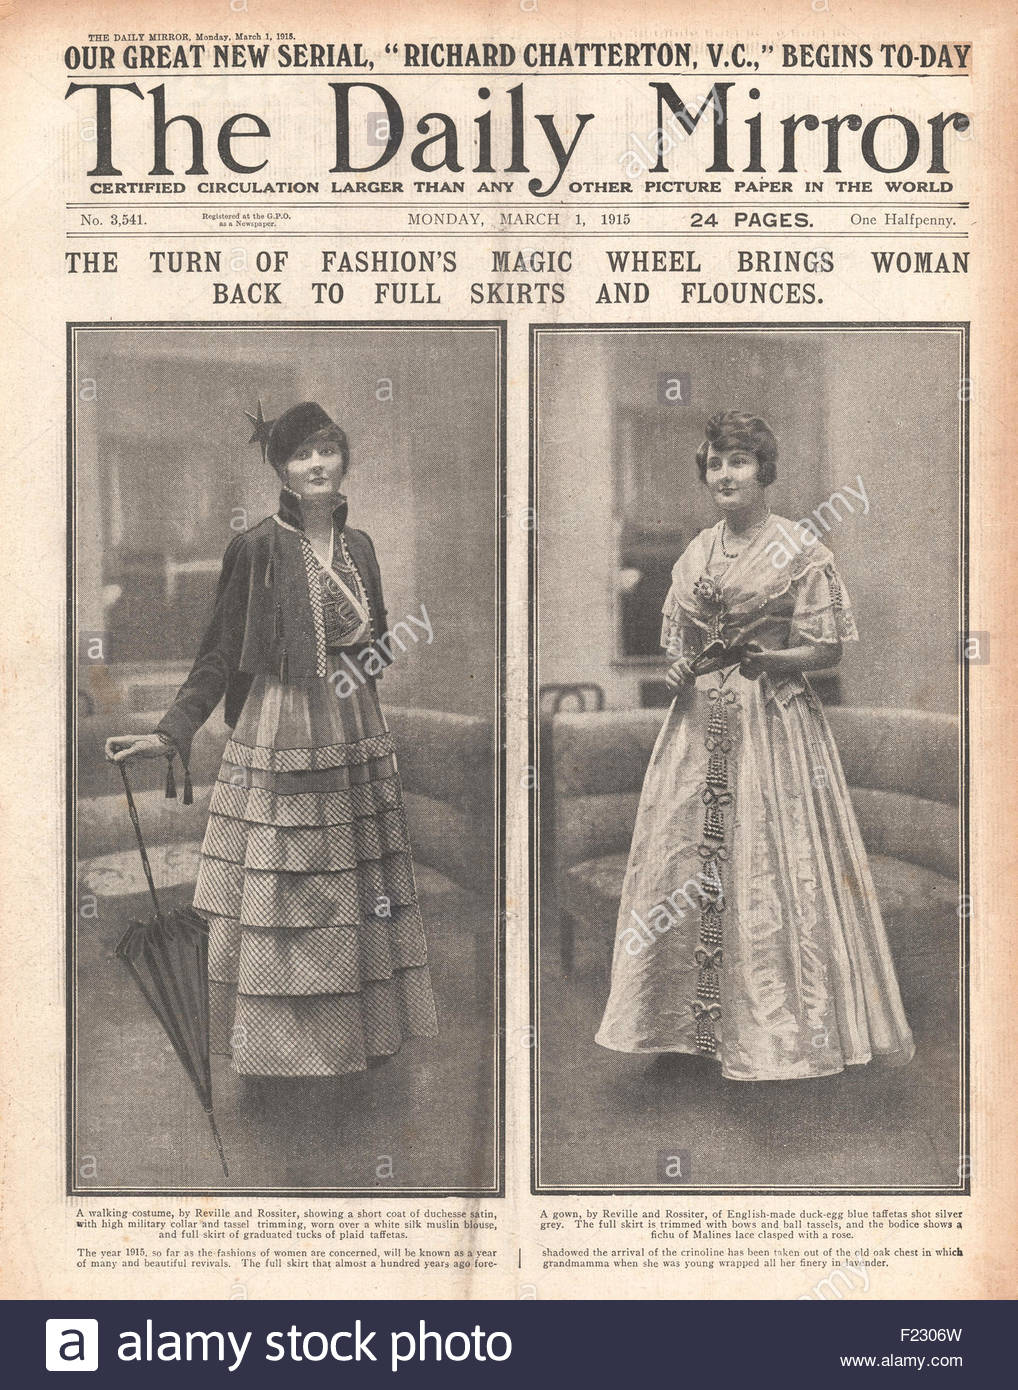 8c38abd49 1915 front page Daily Mirror Ladies Full Skirt Fashion - Stock Image